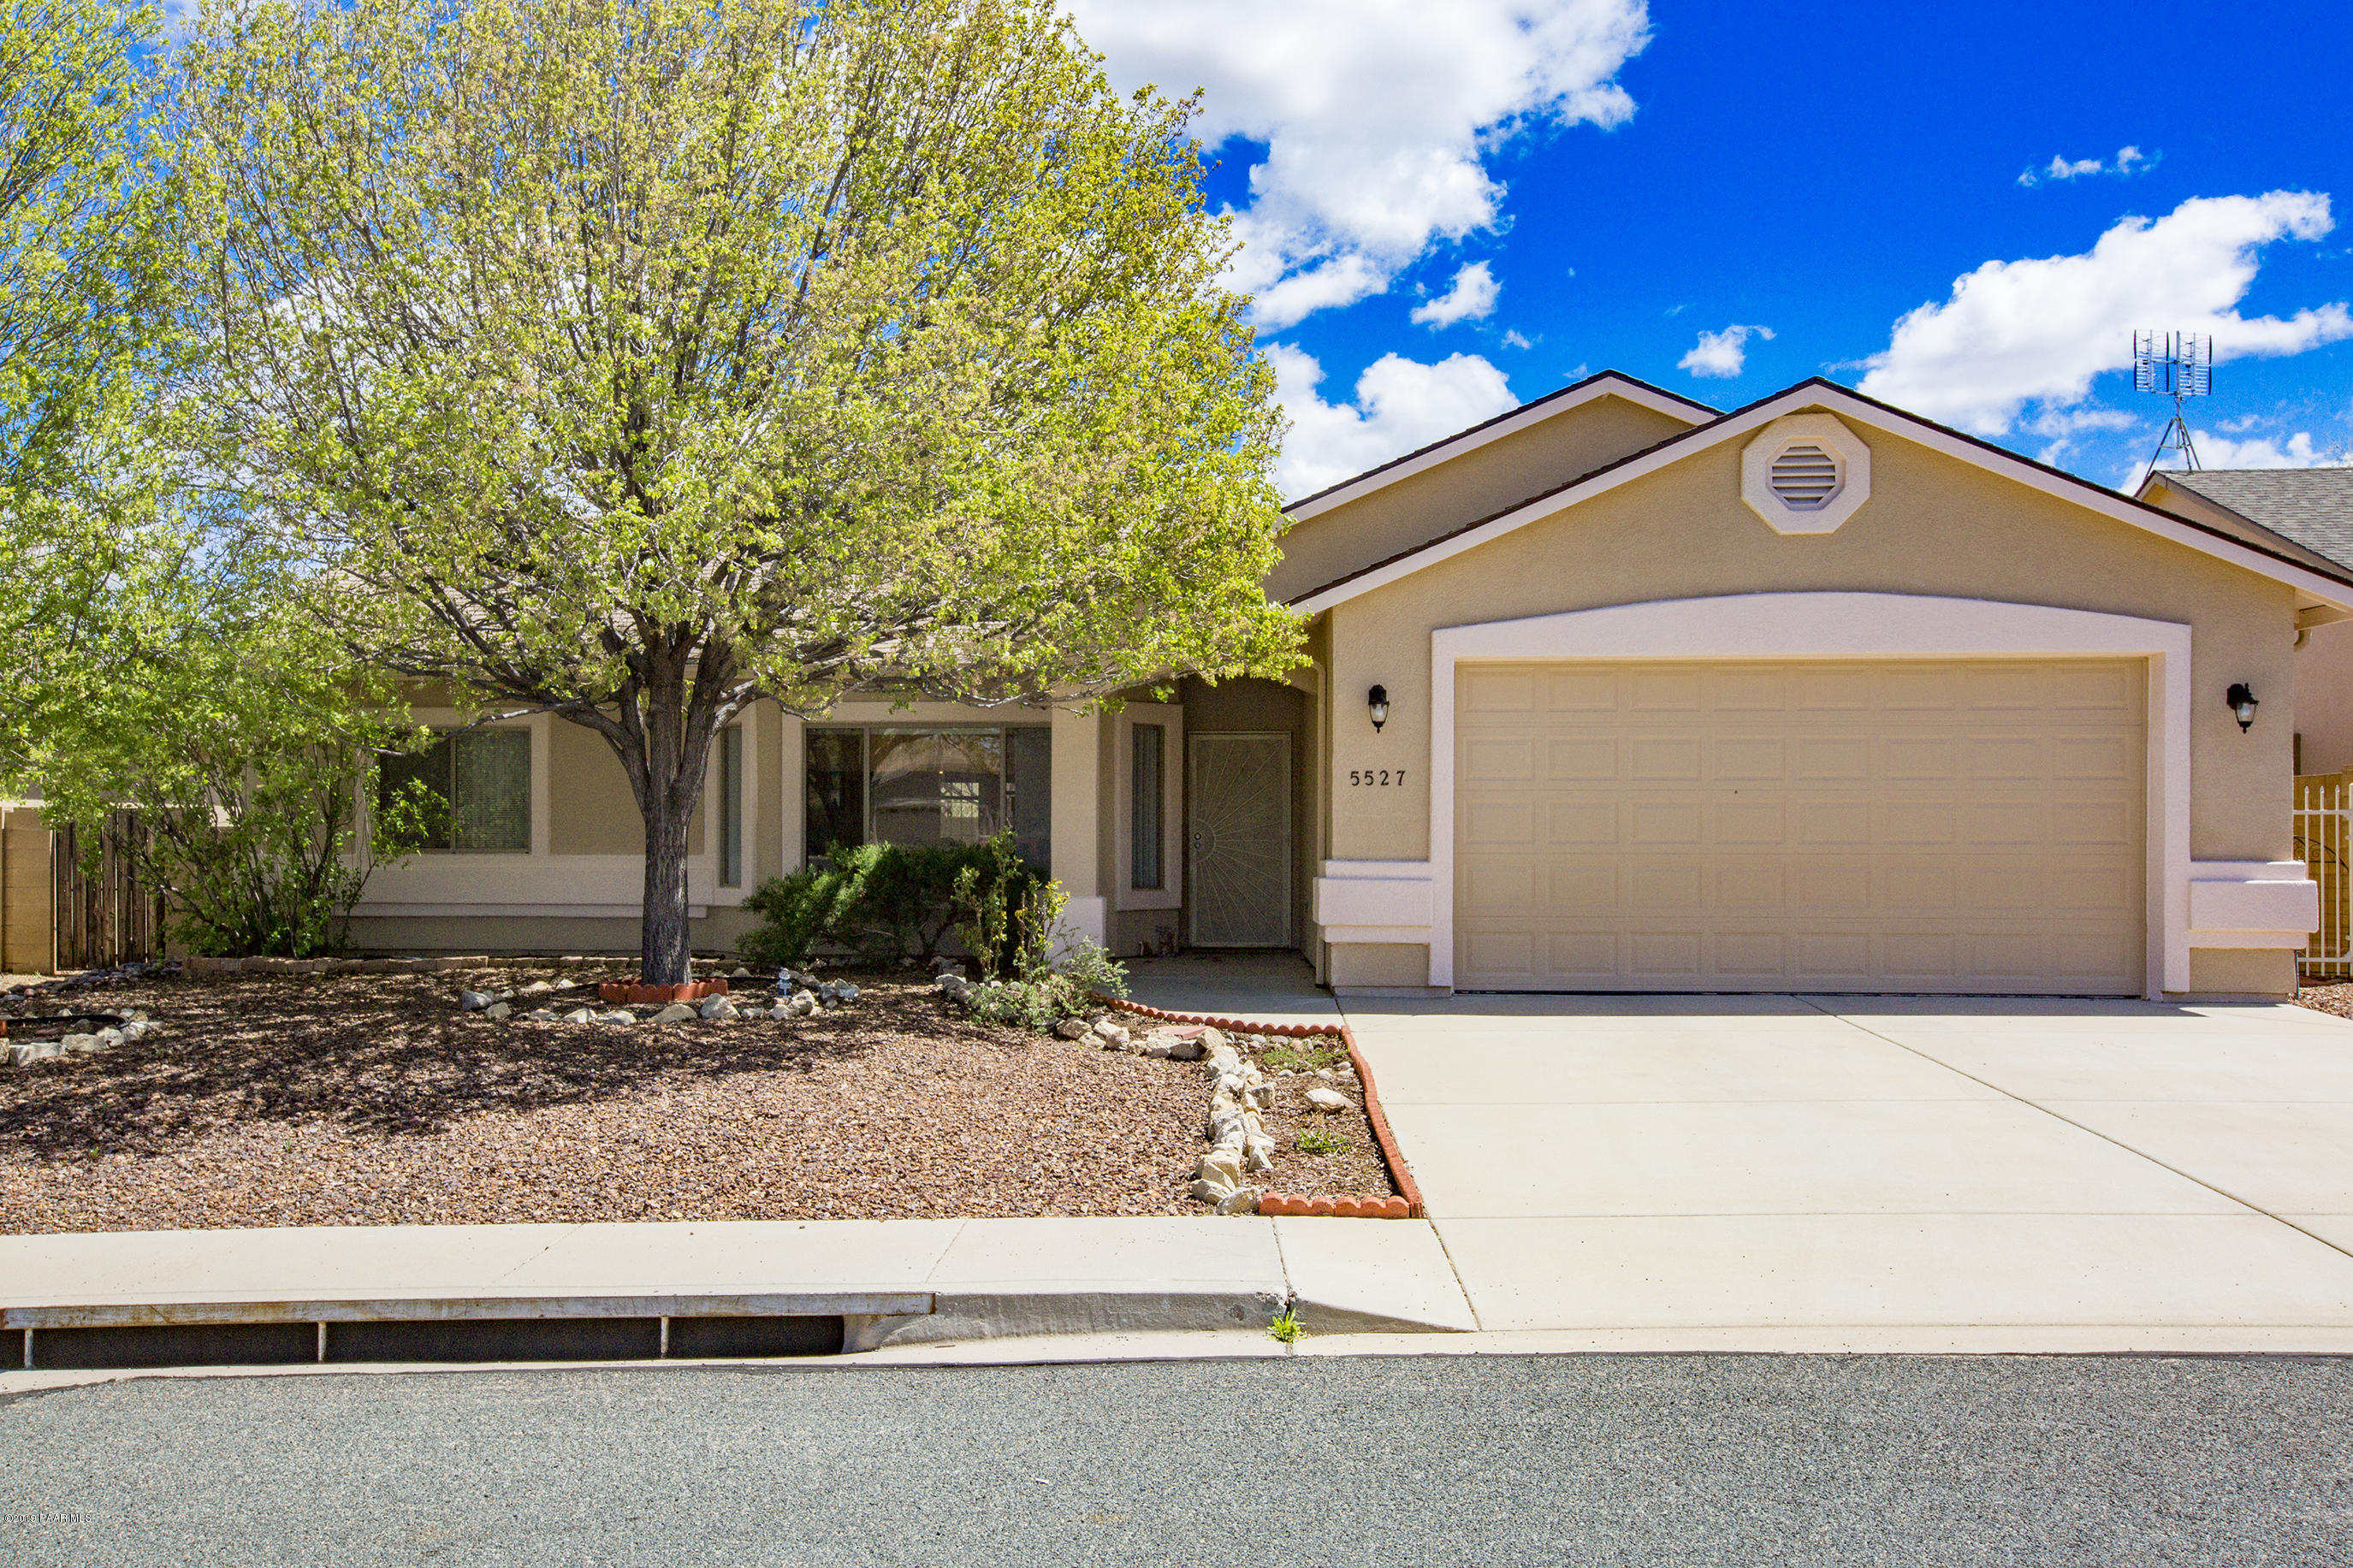 Photo of 5527 Ardmore, Prescott Valley, AZ 86314